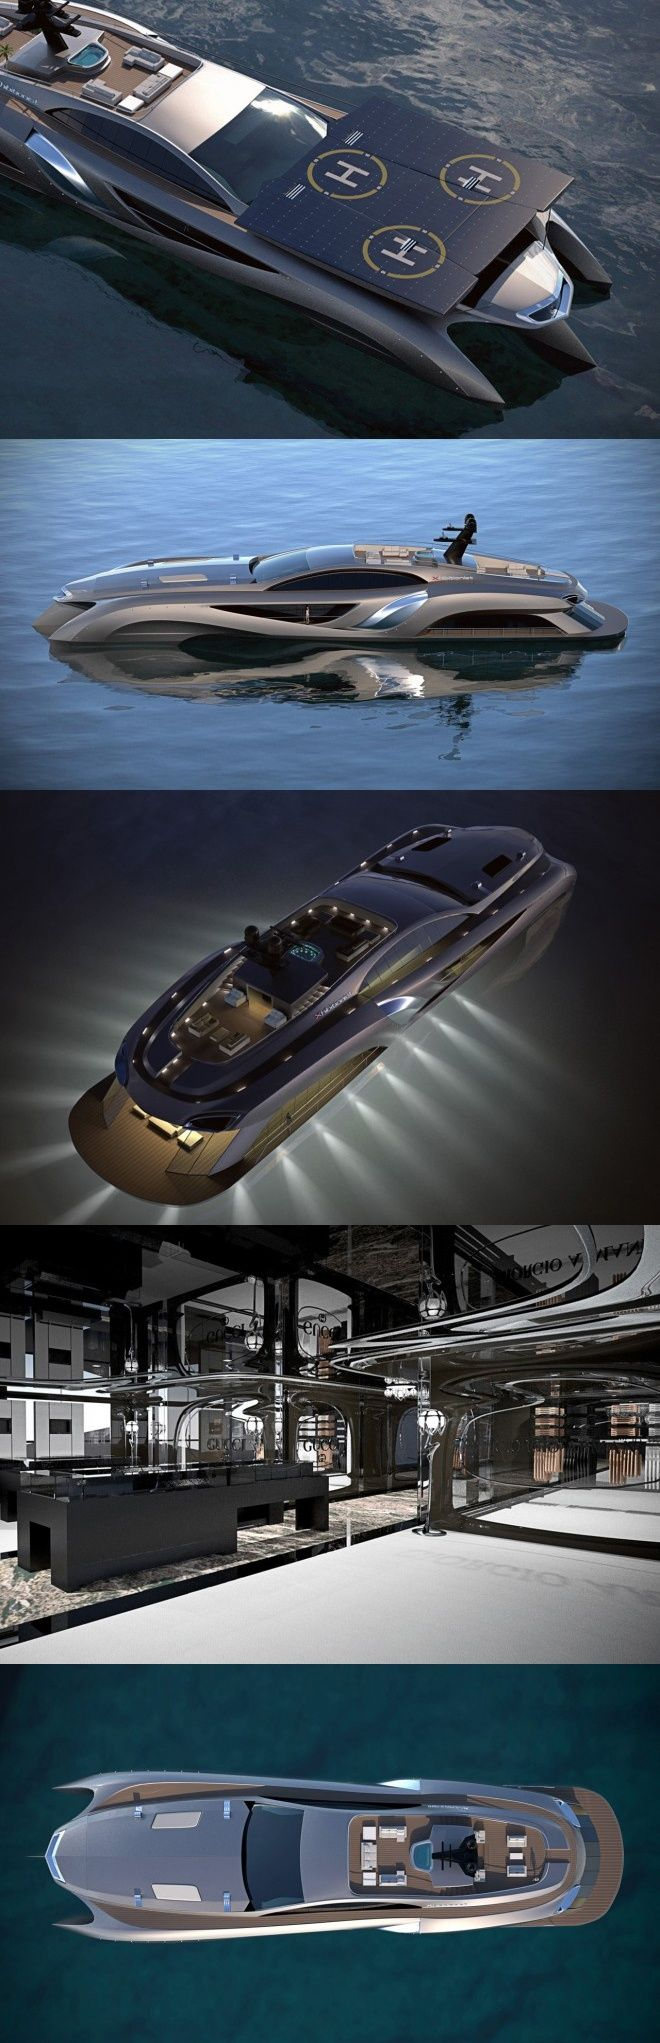 Masculine Elegance - This extraordinary yacht is 75-meters in size and decked out with the best of technology and design.